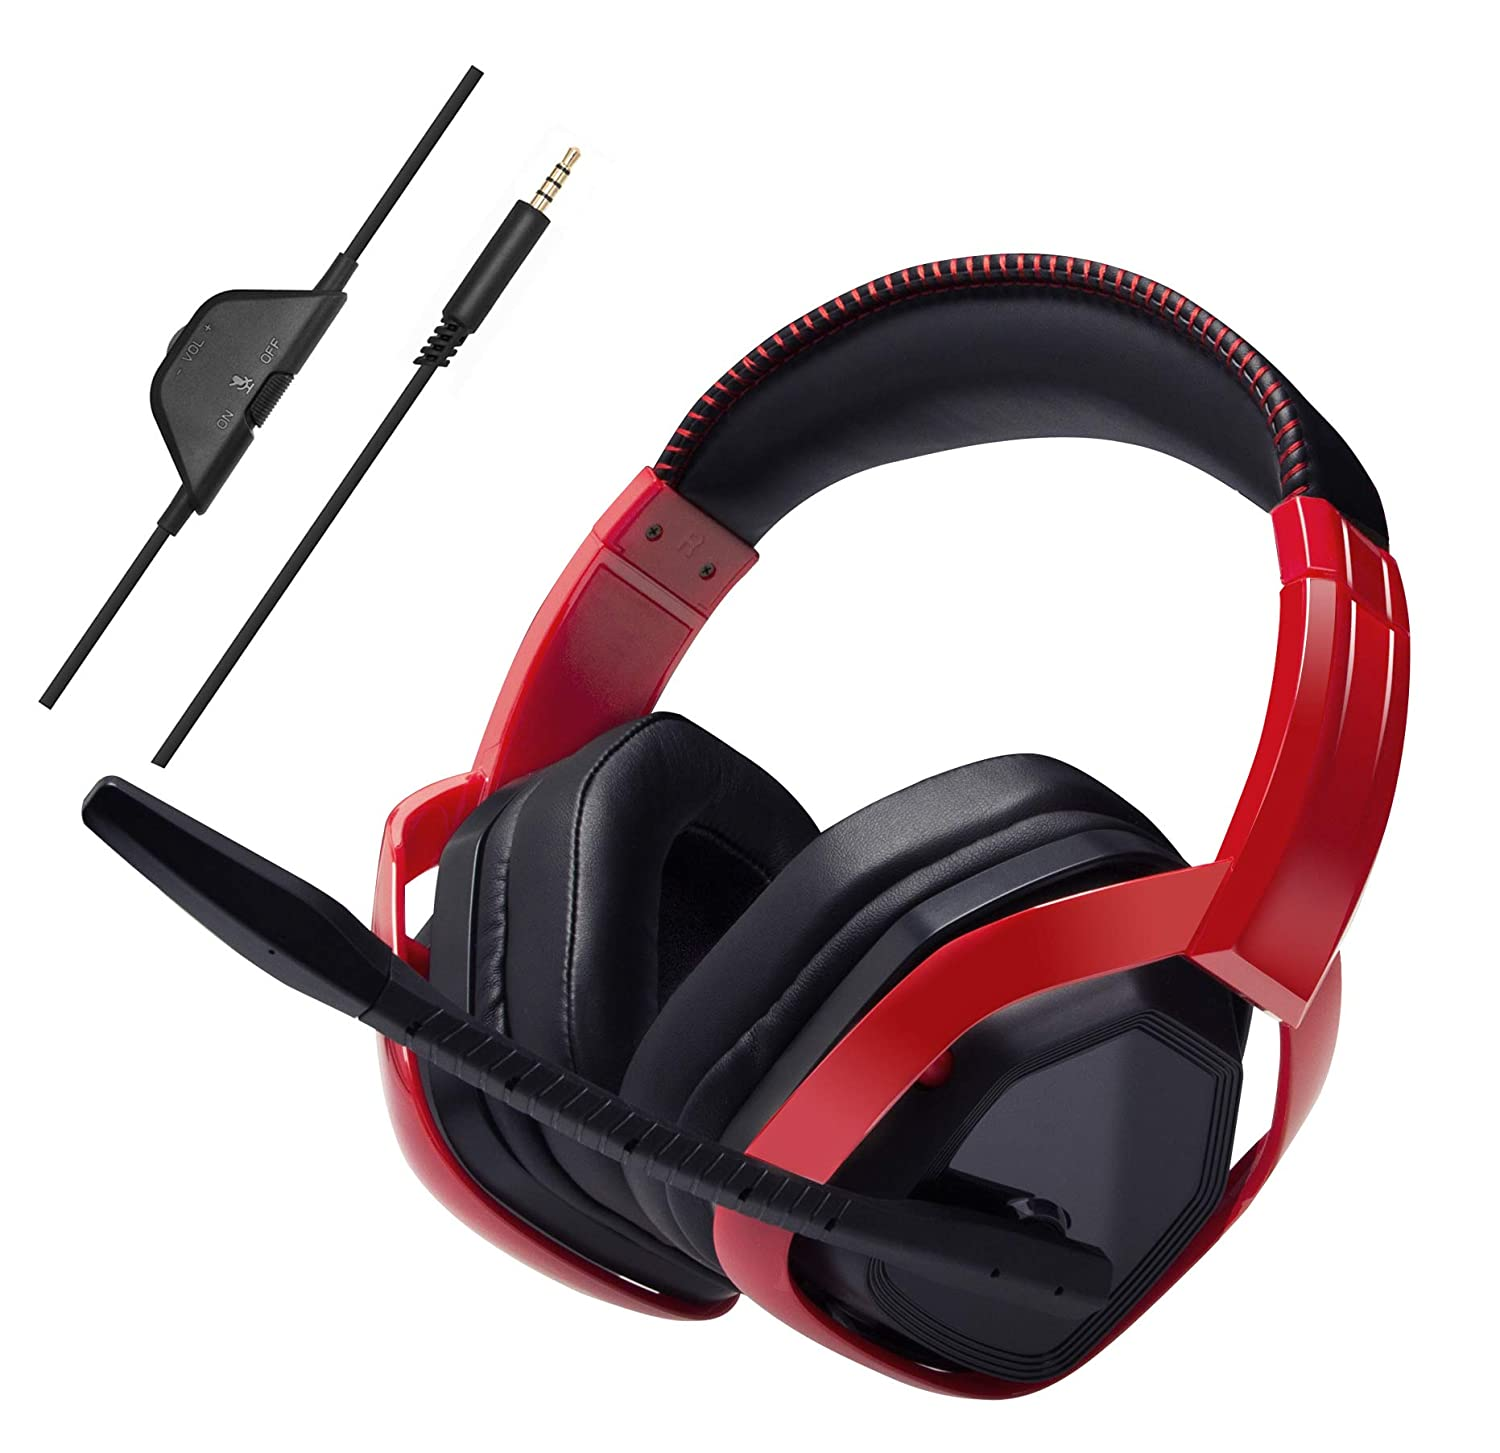 AmazonBasics Pro Gaming Headset - Red